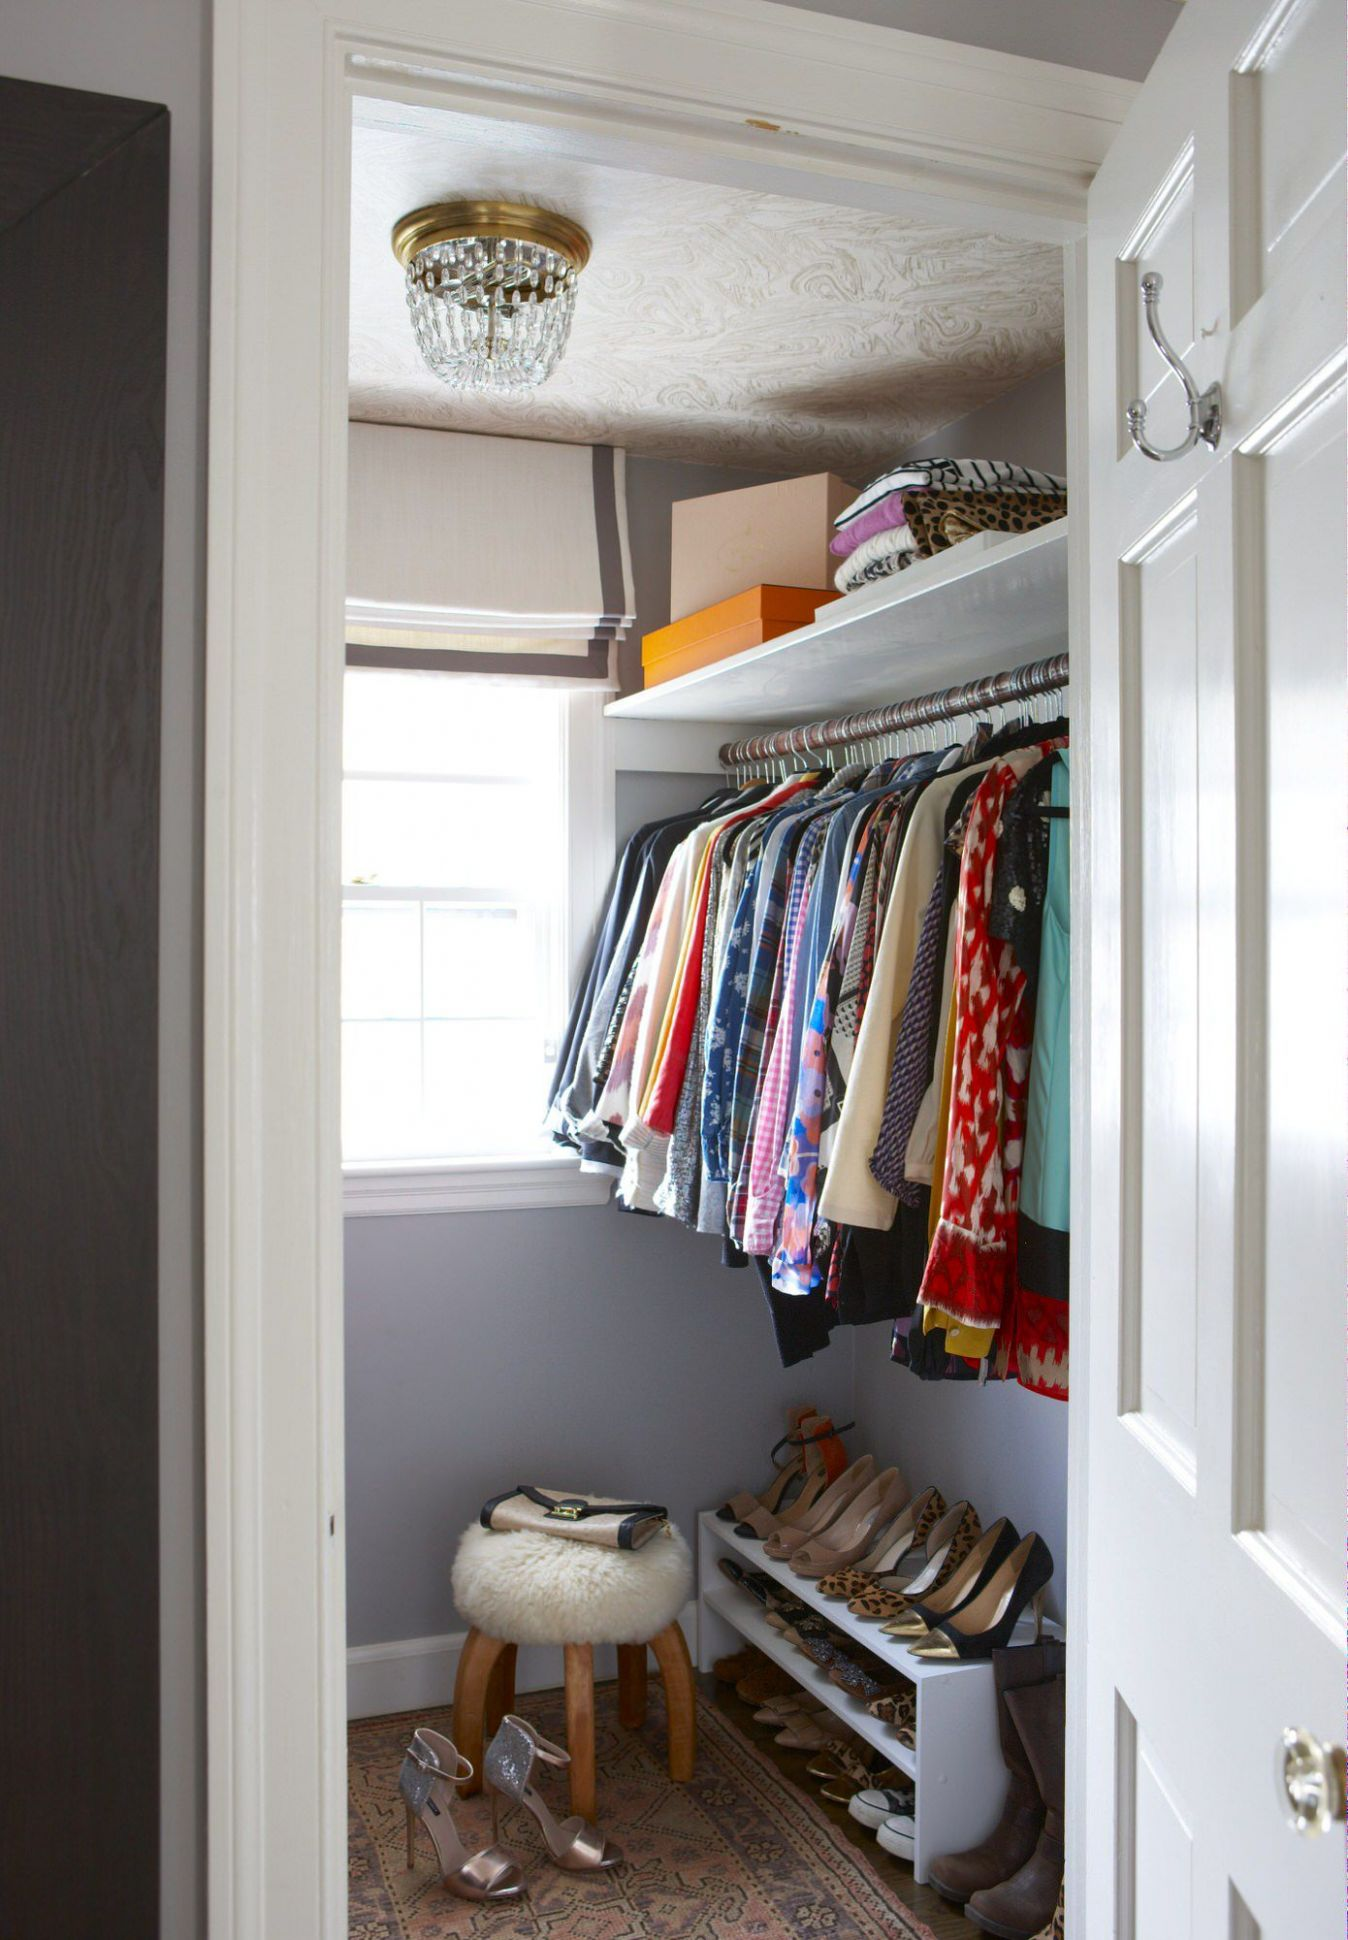 10 Best Small Walk-in Closet Storage Ideas for Bedrooms - closet ideas for small apartments